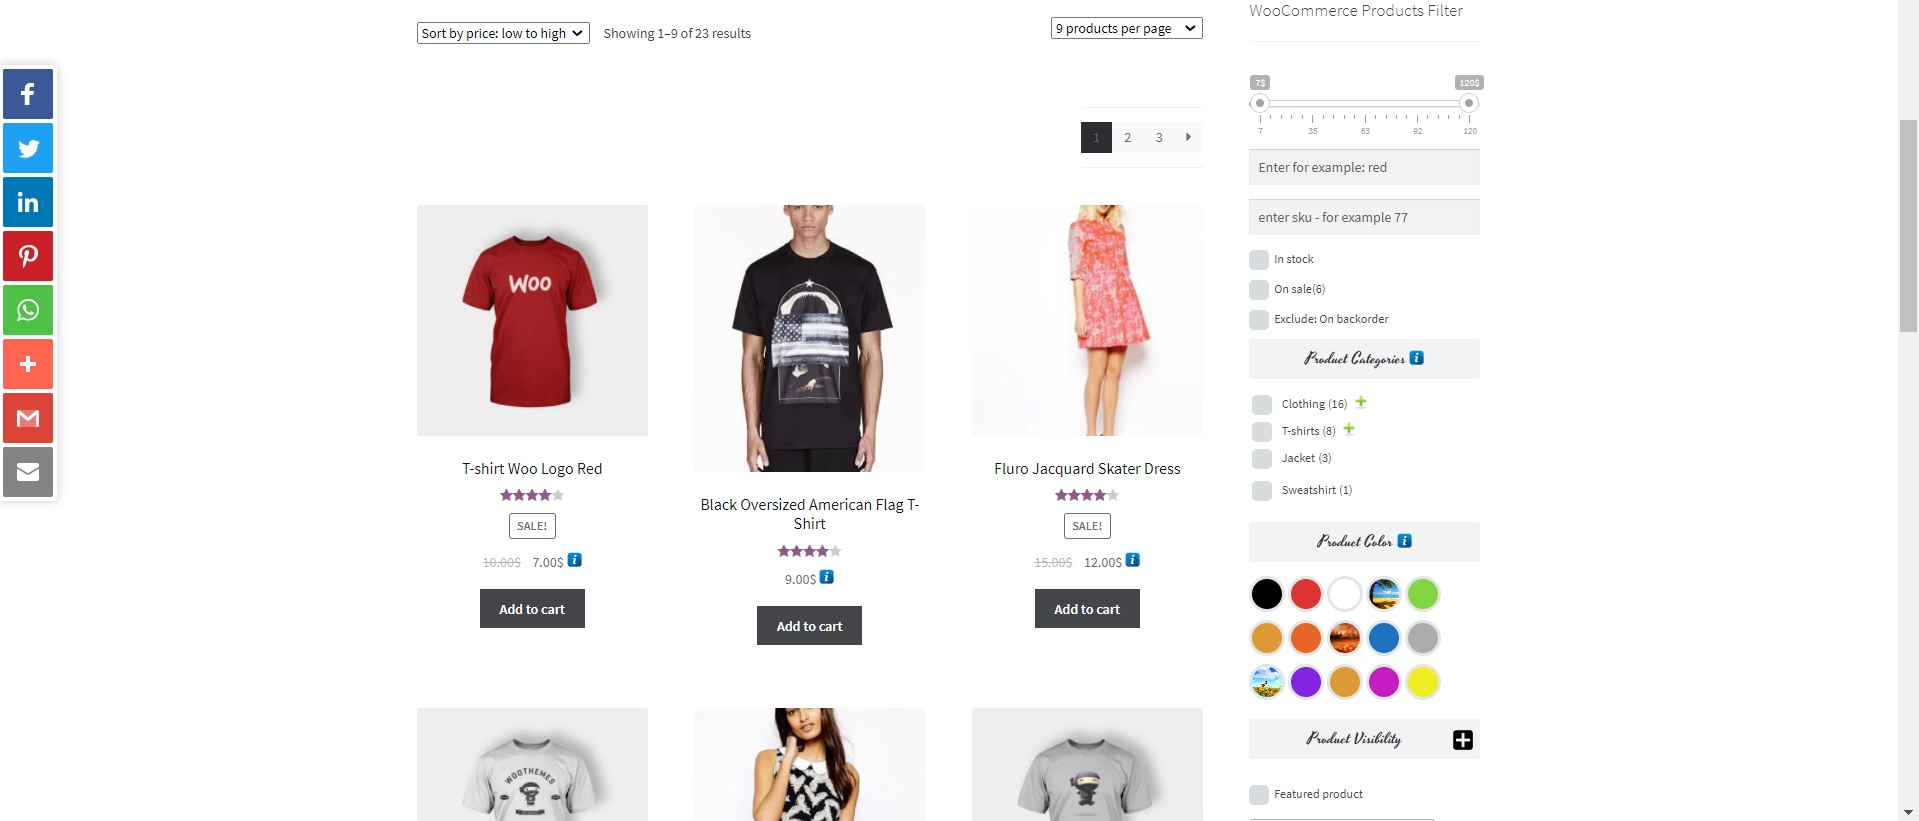 1. WOOF - WooCommerce Products Filter (2021)